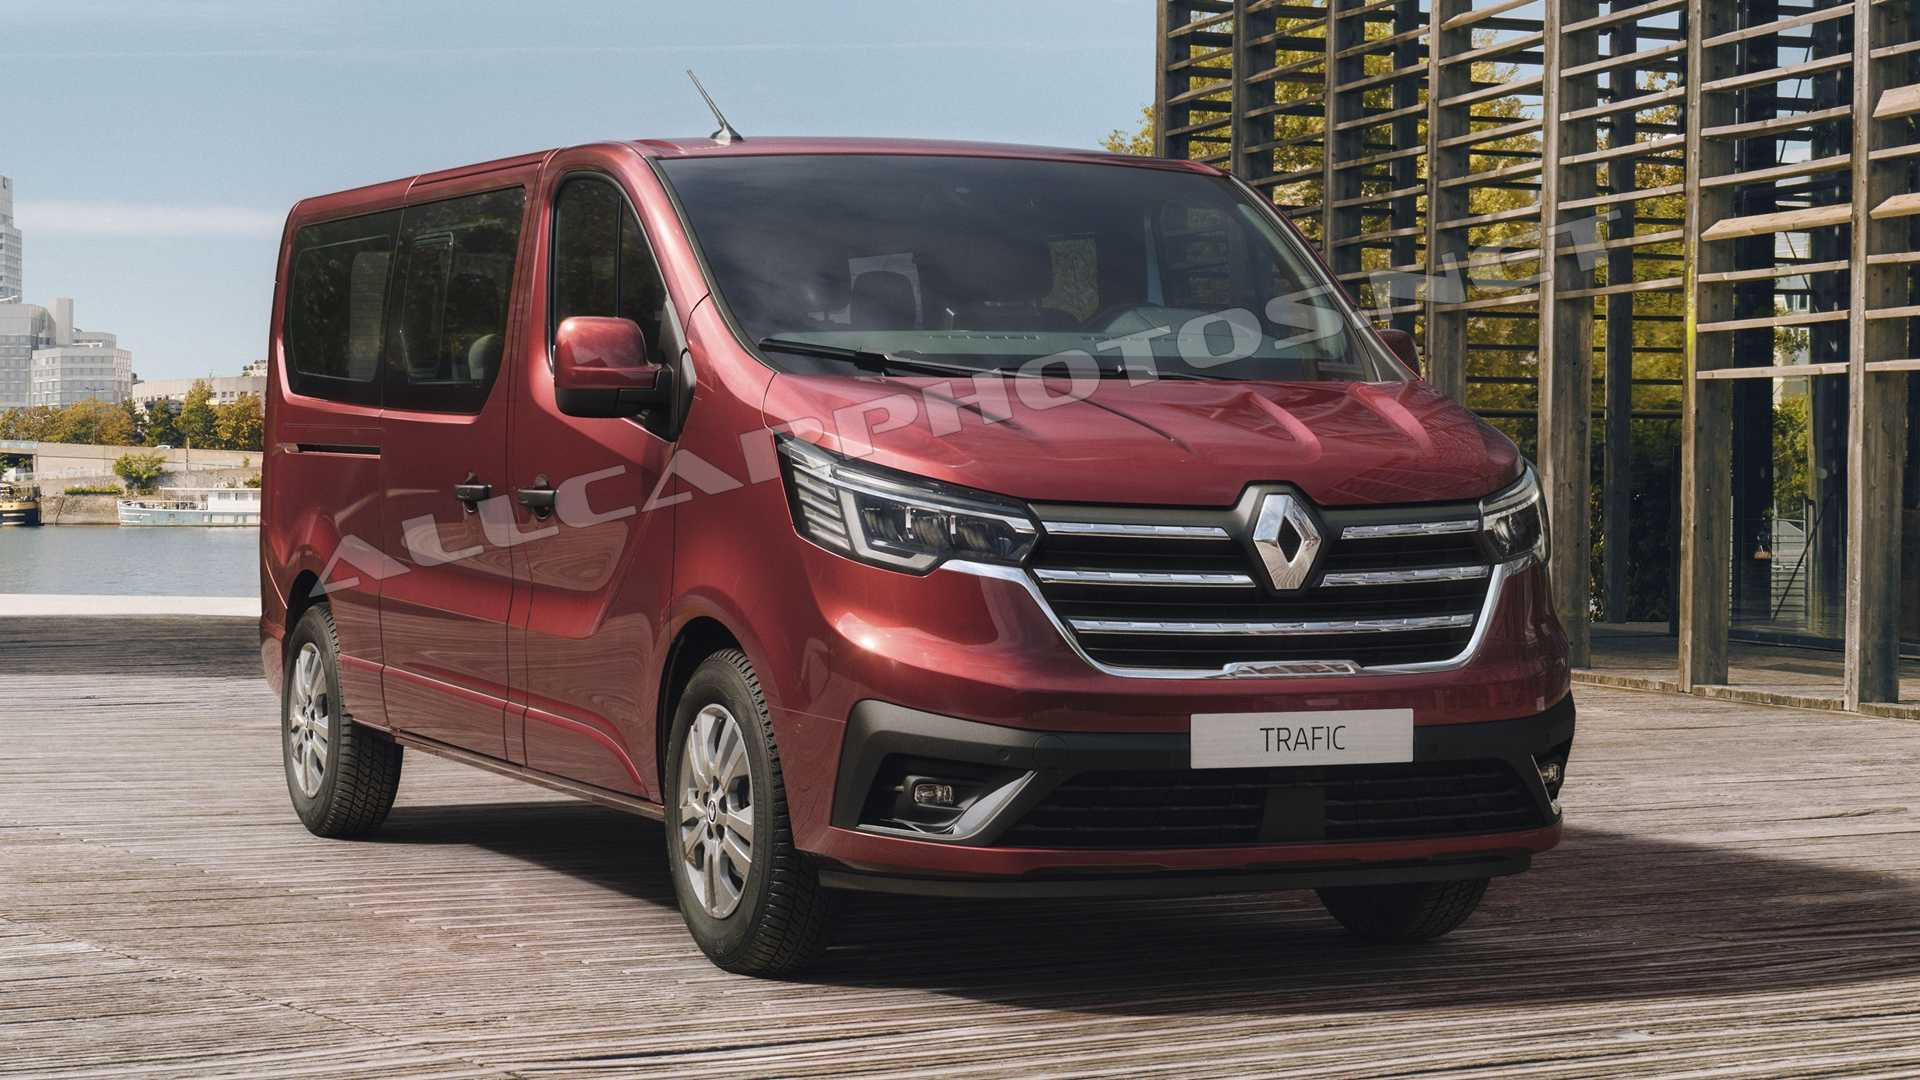 Renault Trafic 2021: It was debuts with its renewed face की तस्वीर